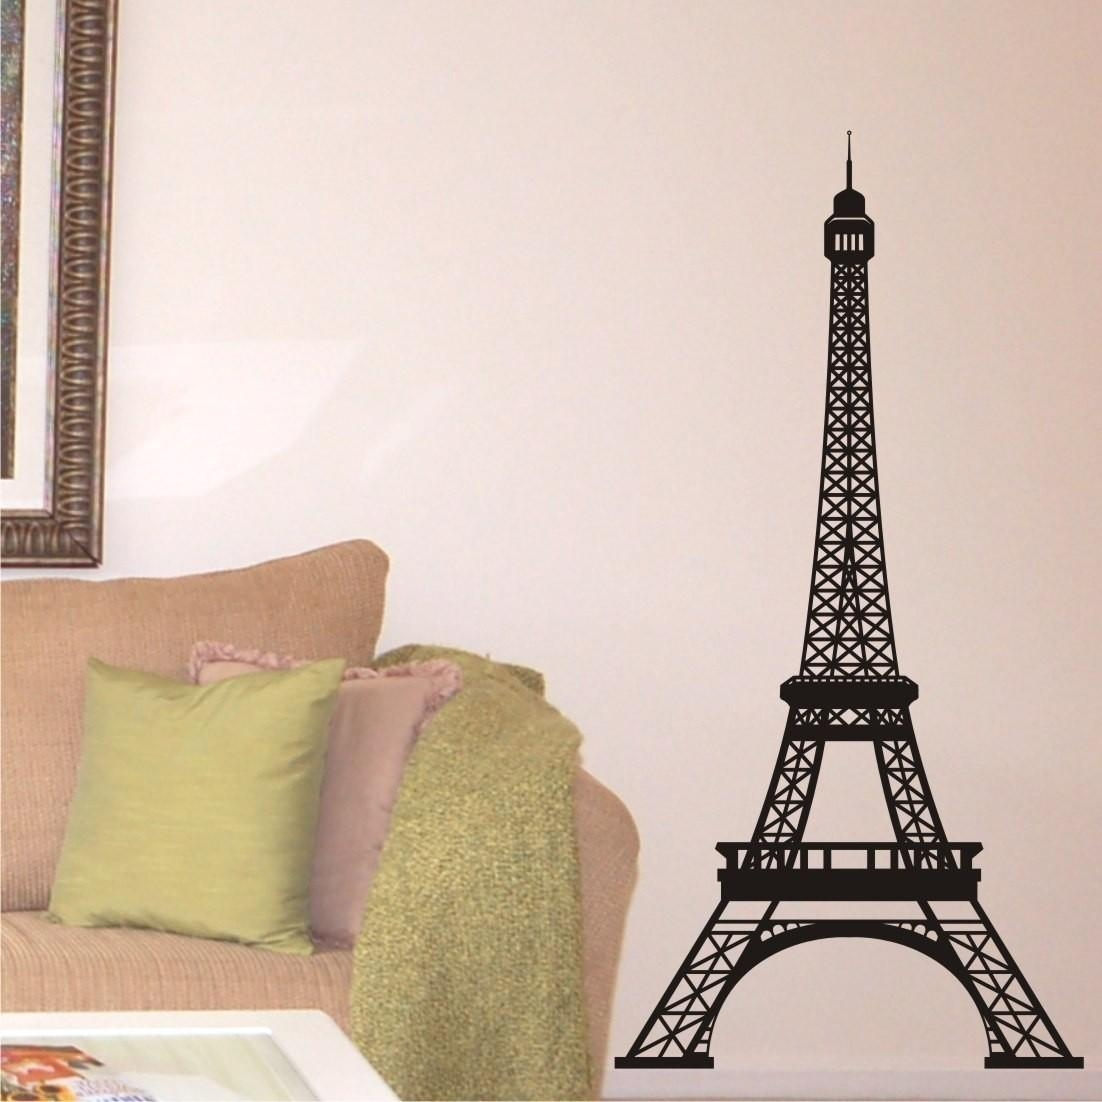 Wall Decor Eiffel Tower | New Interior Design In Eiffel Tower Wall Hanging Art (Image 15 of 20)